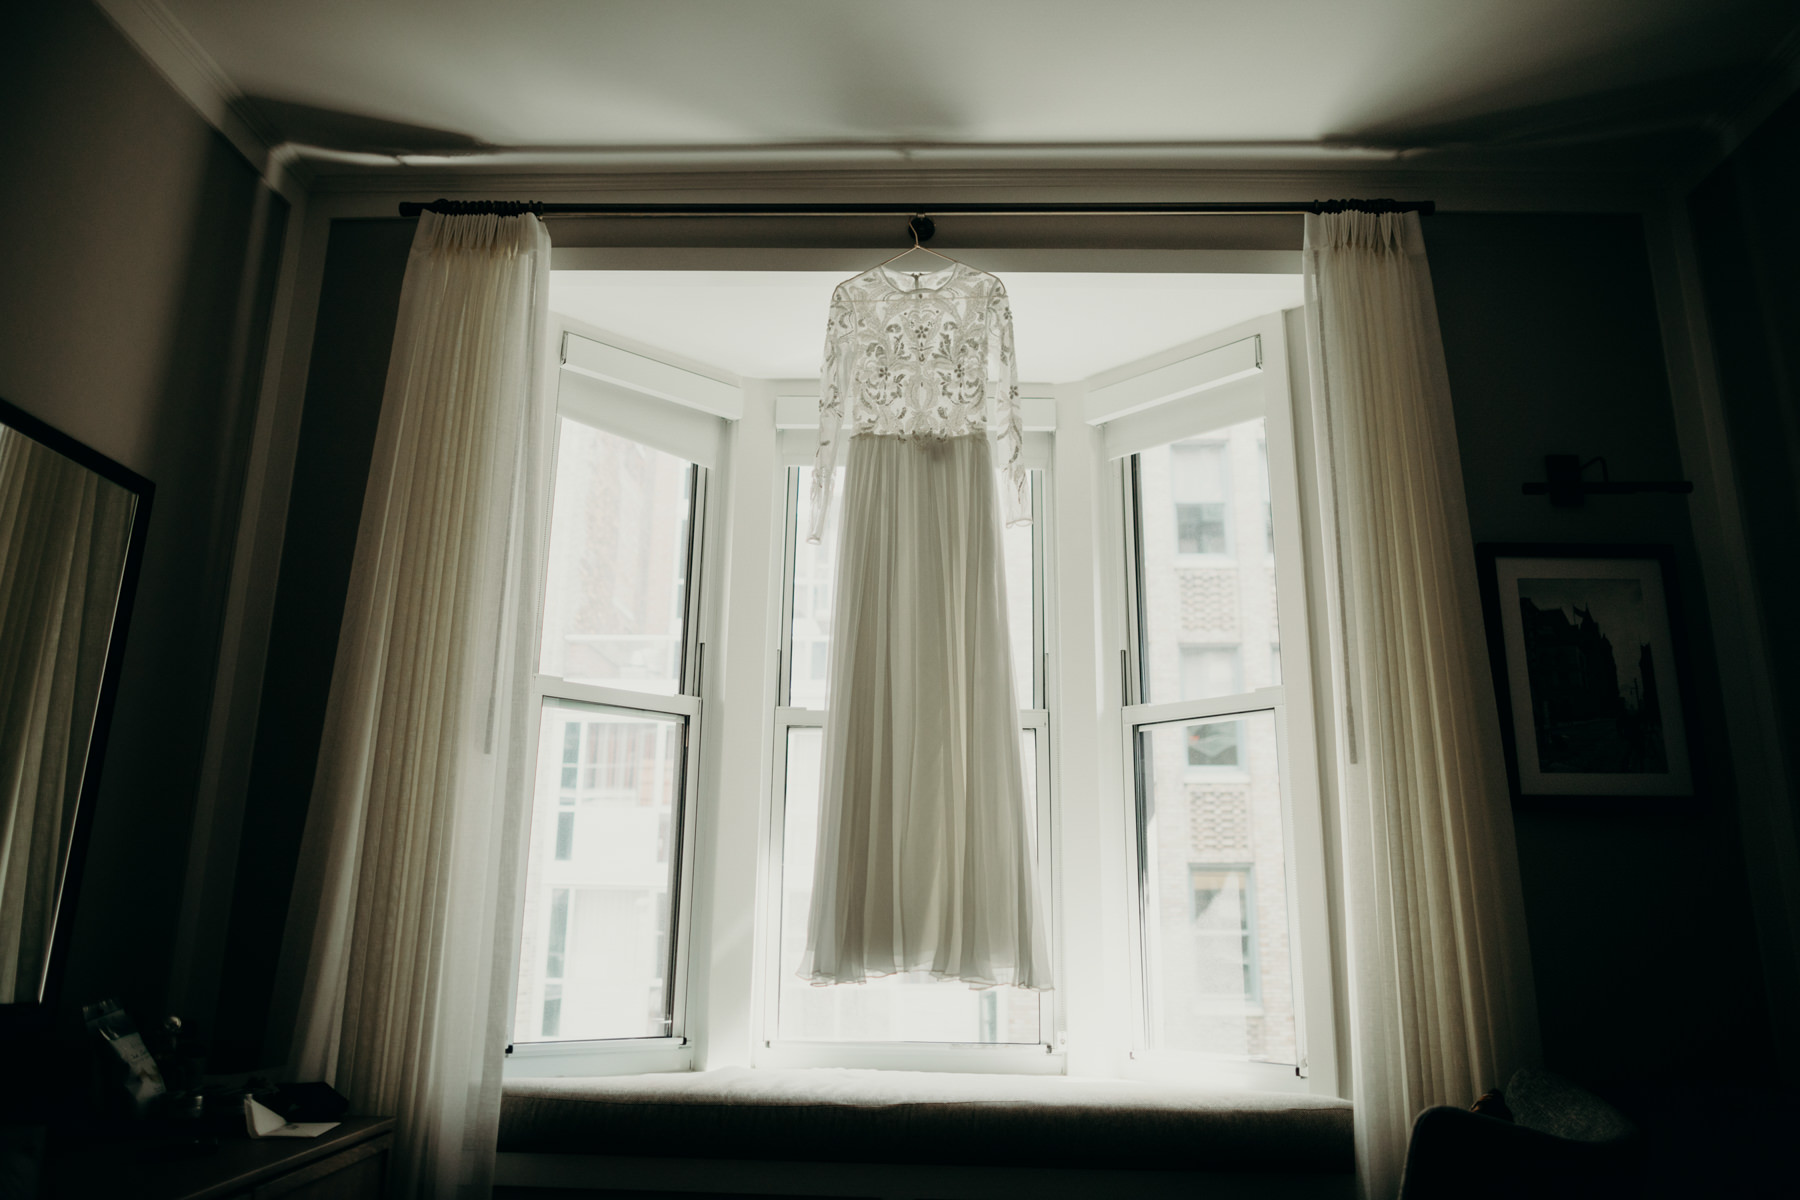 New York City Elopement Dress Hanging in Window